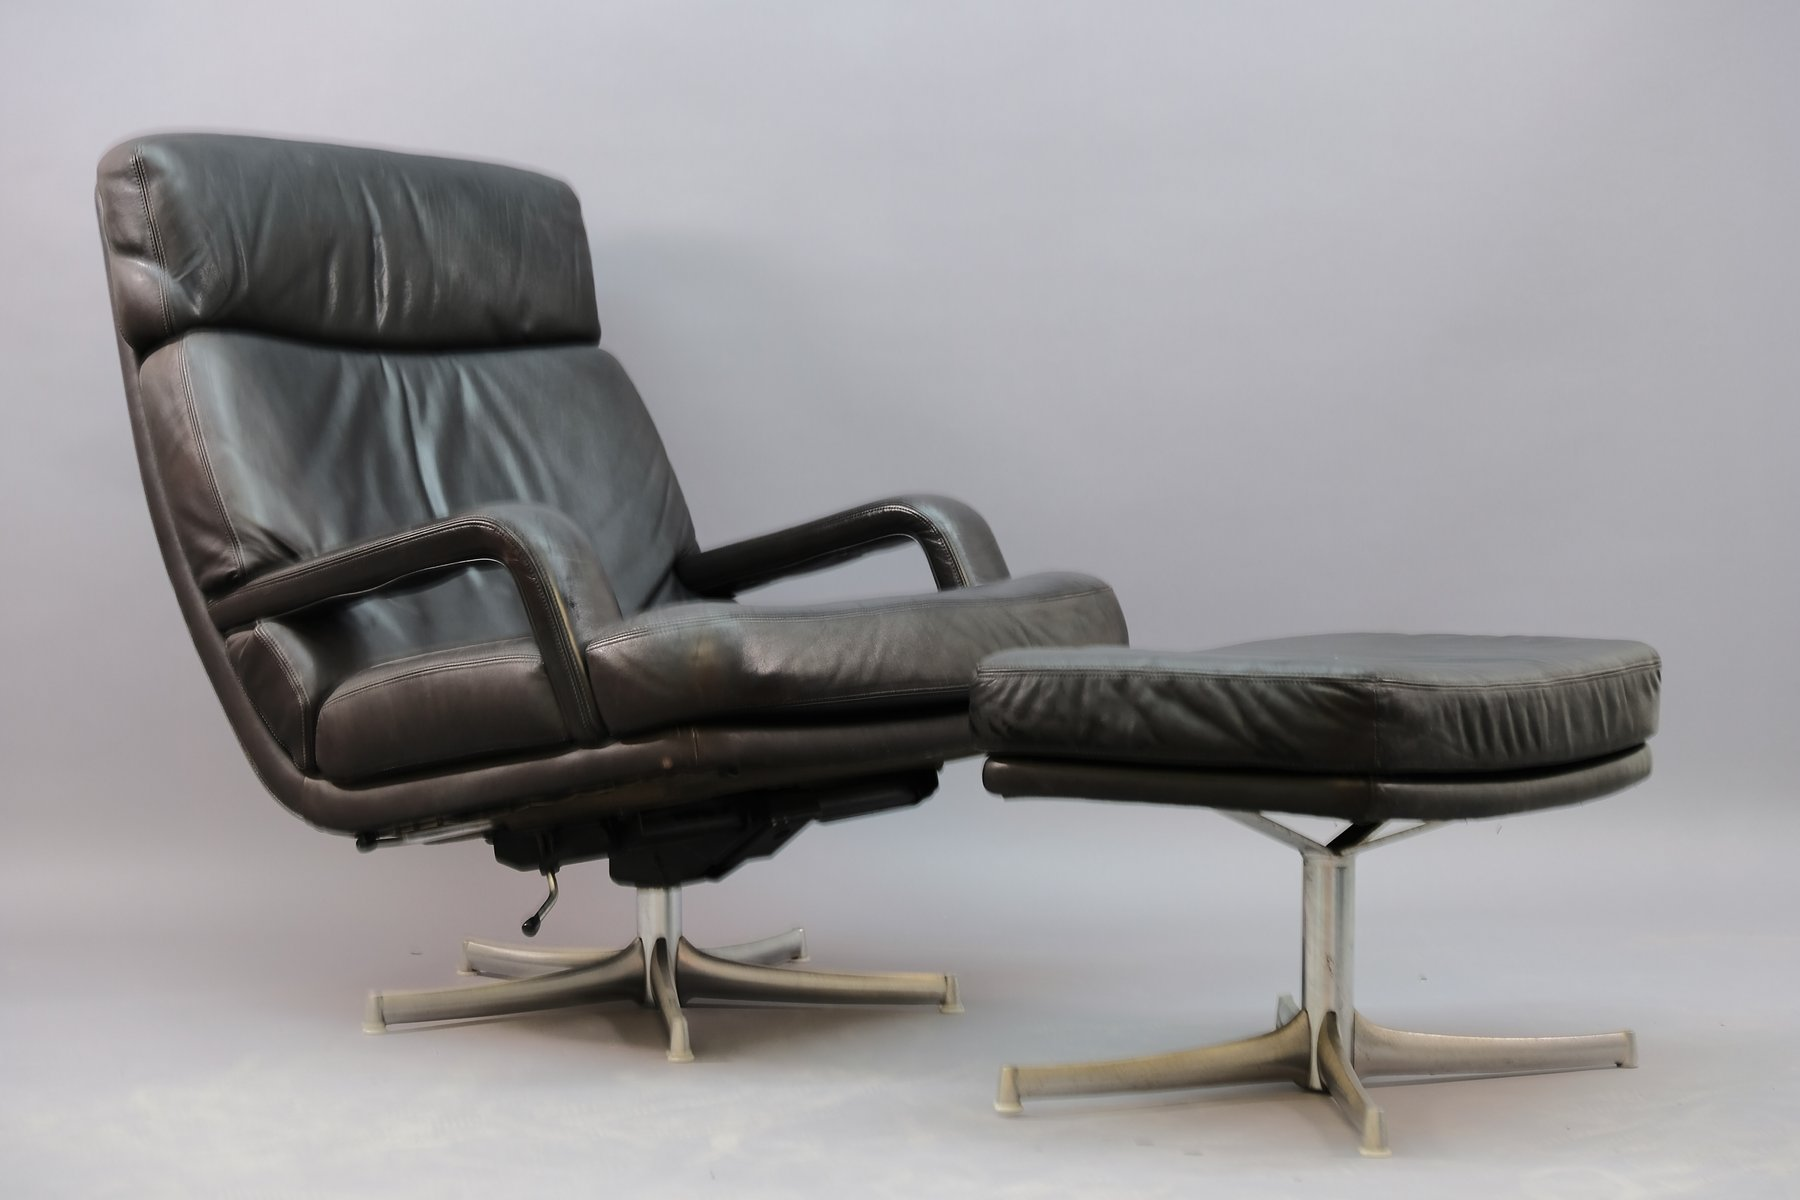 Vintage Leather Lounge Chair And Ottoman Set By Bernd Münzebrock For Walter Knoll Wilhelm Knoll 1970s For Sale At Pamono